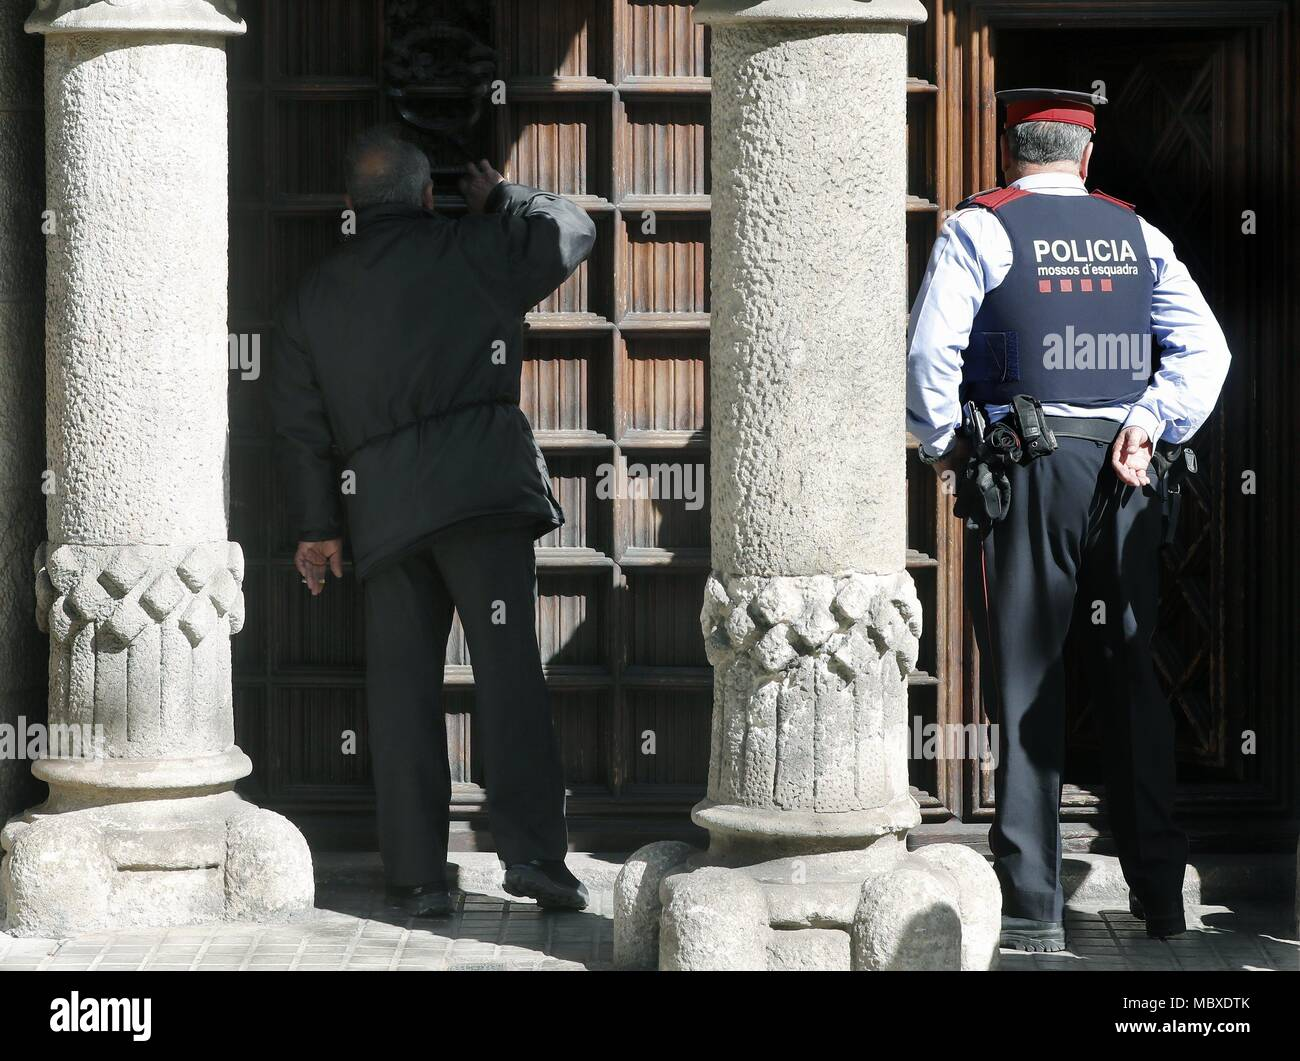 Barcelona, Spain. 12th Apr, 2018. A Mosso d'Esquadra officer arrives for a police search at the Council of Public Diplomacy of Catalonia (Diplocat) in response to an order issued by the judge investigating the preparations for the illegal Catalan independence referendum held on 01 October, in Barcelona, northeastern Spain, 12 April 2018. Credit: Andreu Dalmau/EFE/Alamy Live News Stock Photo